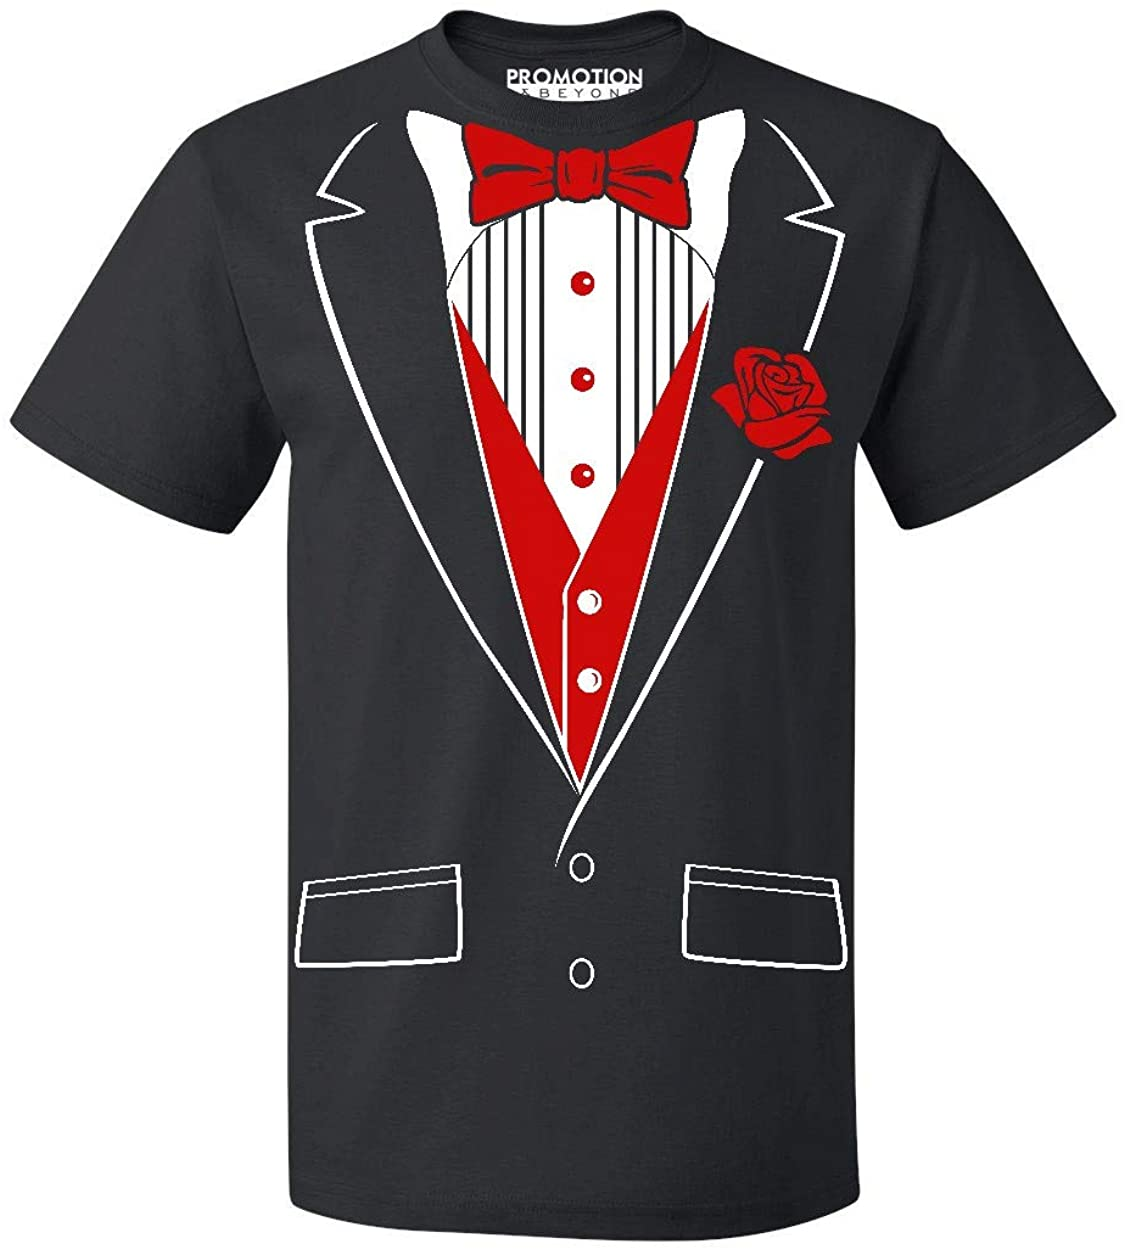 P&B Tuxedo Red Rose Funny Men's T-Shirt